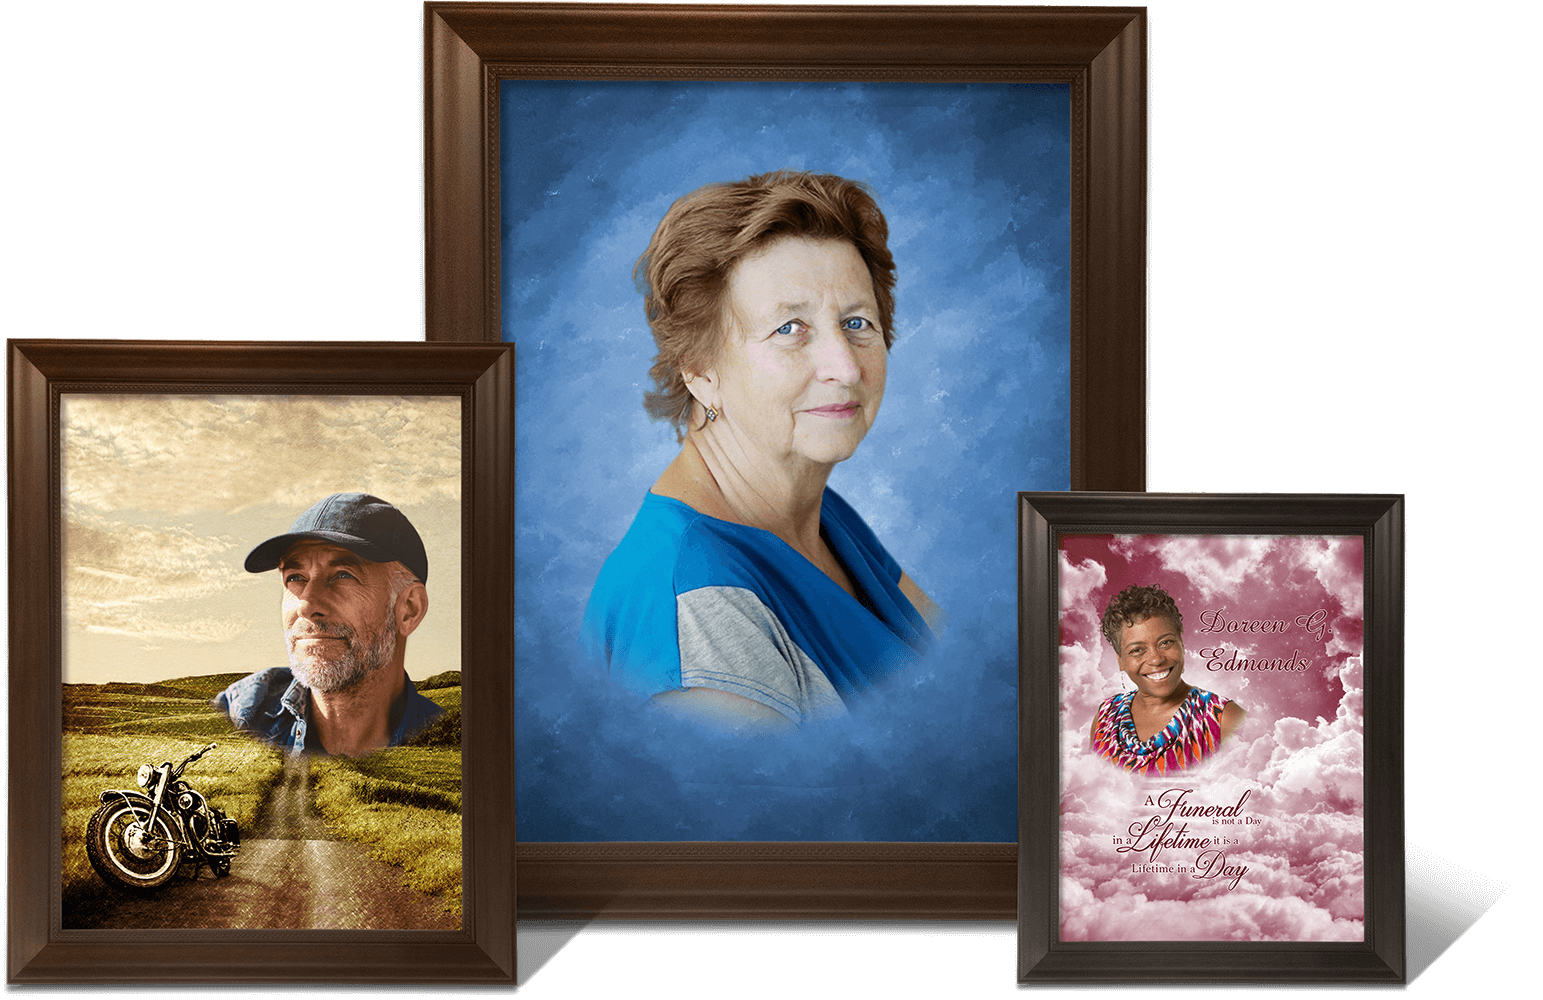 Personalized Funeral Portraits